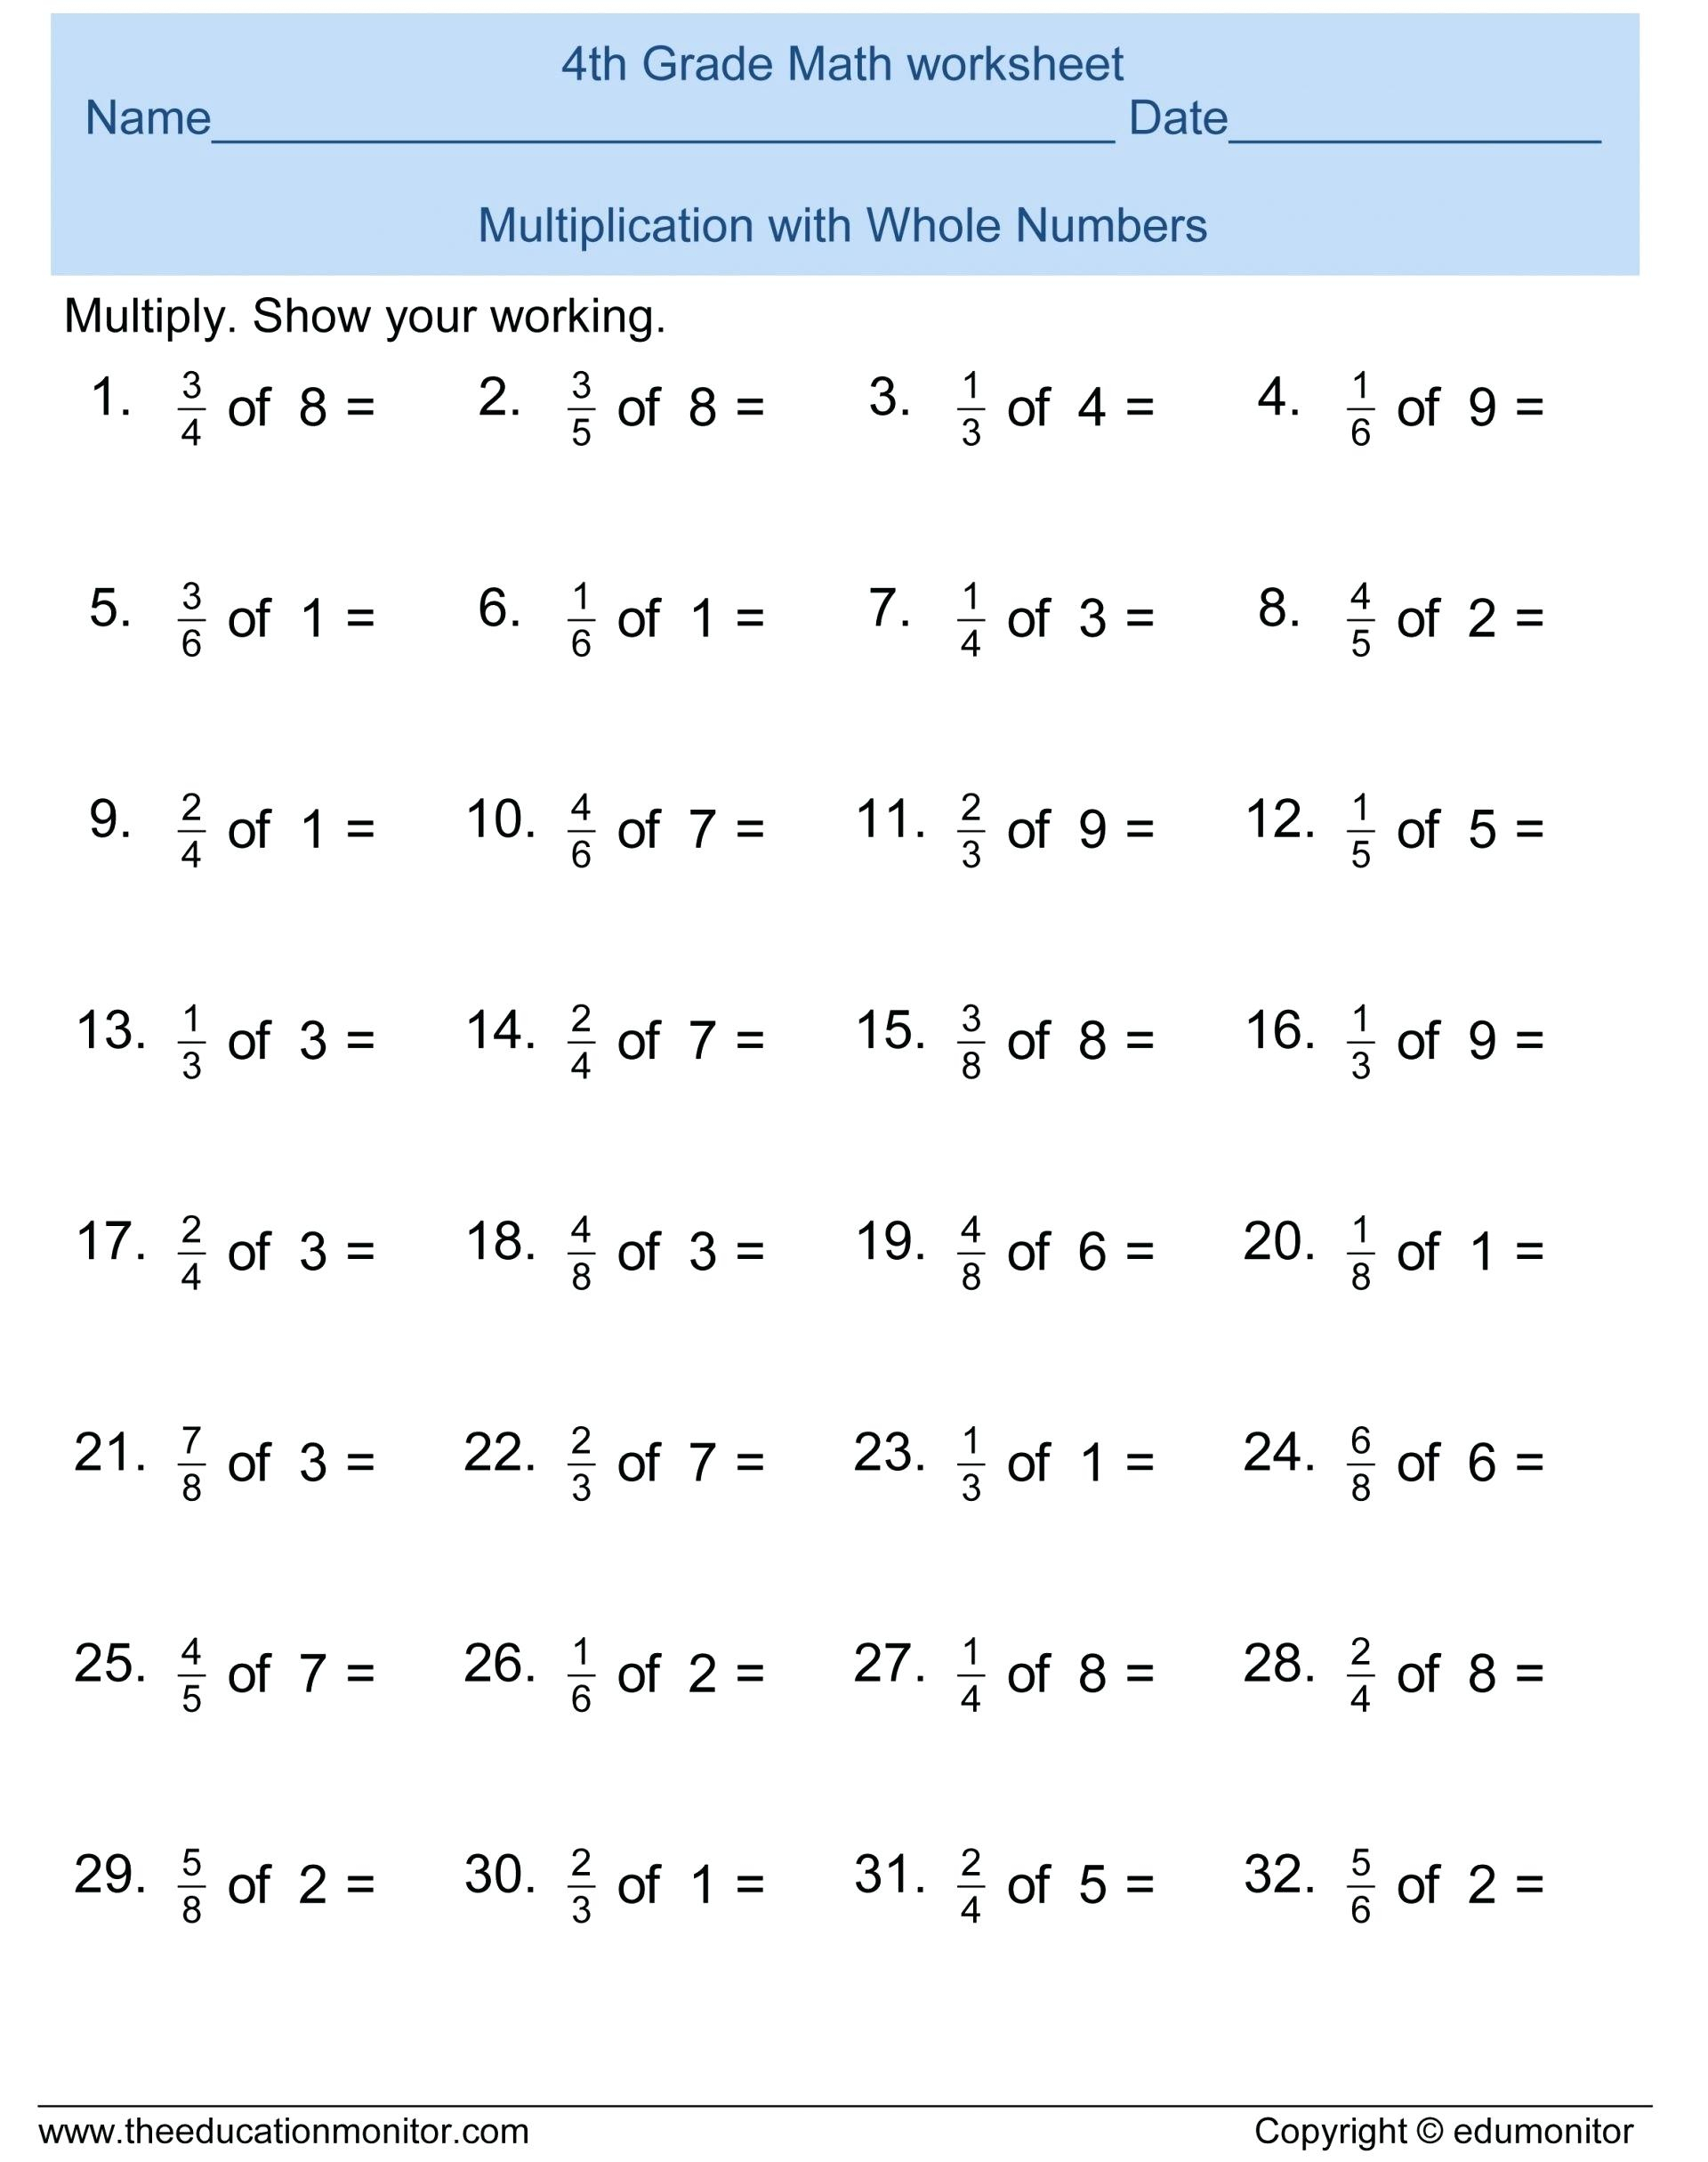 Fourth Grade Math Printable Worksheets – Karenlynndixon | 4Th Grade Math Worksheets Printable Pdf